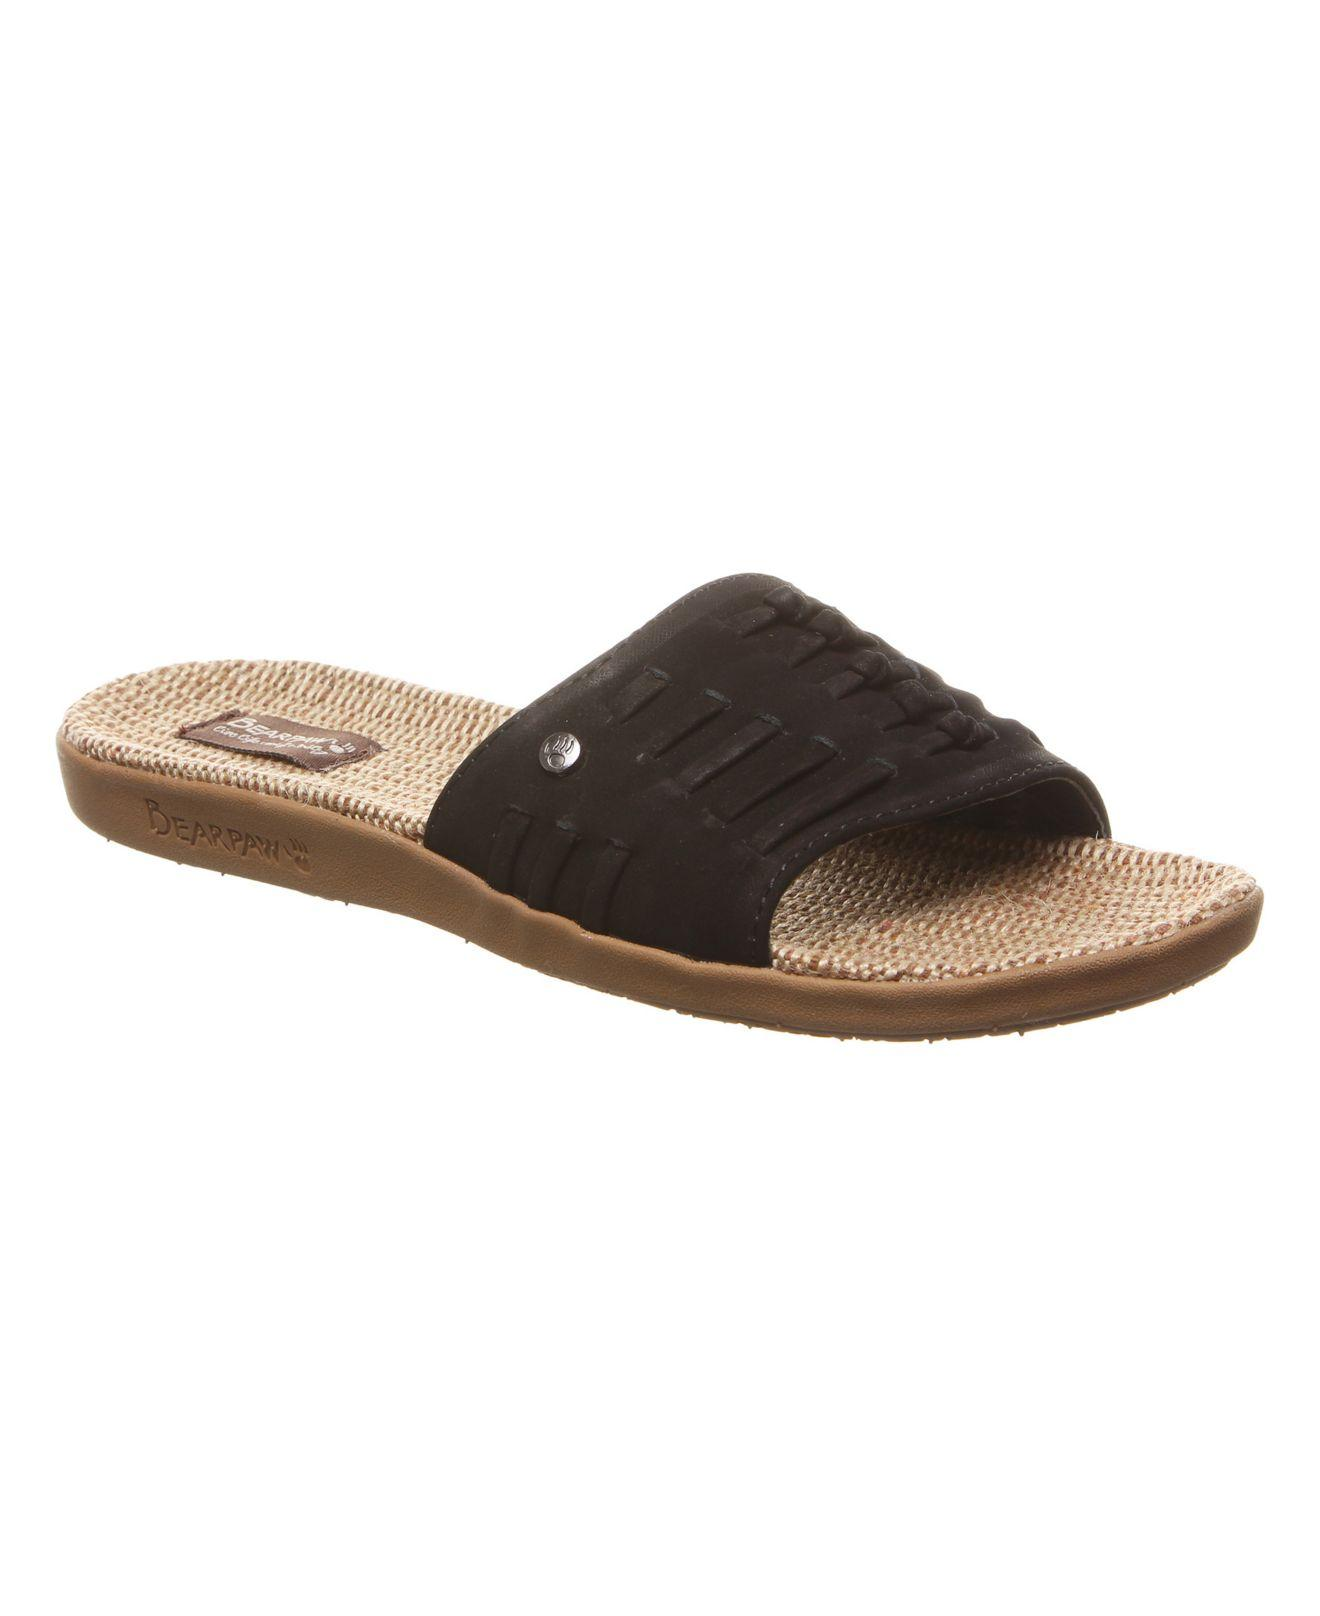 ada70f2968b8 Lyst - BEARPAW Cedar Flat Sandals in Black - Save 37%